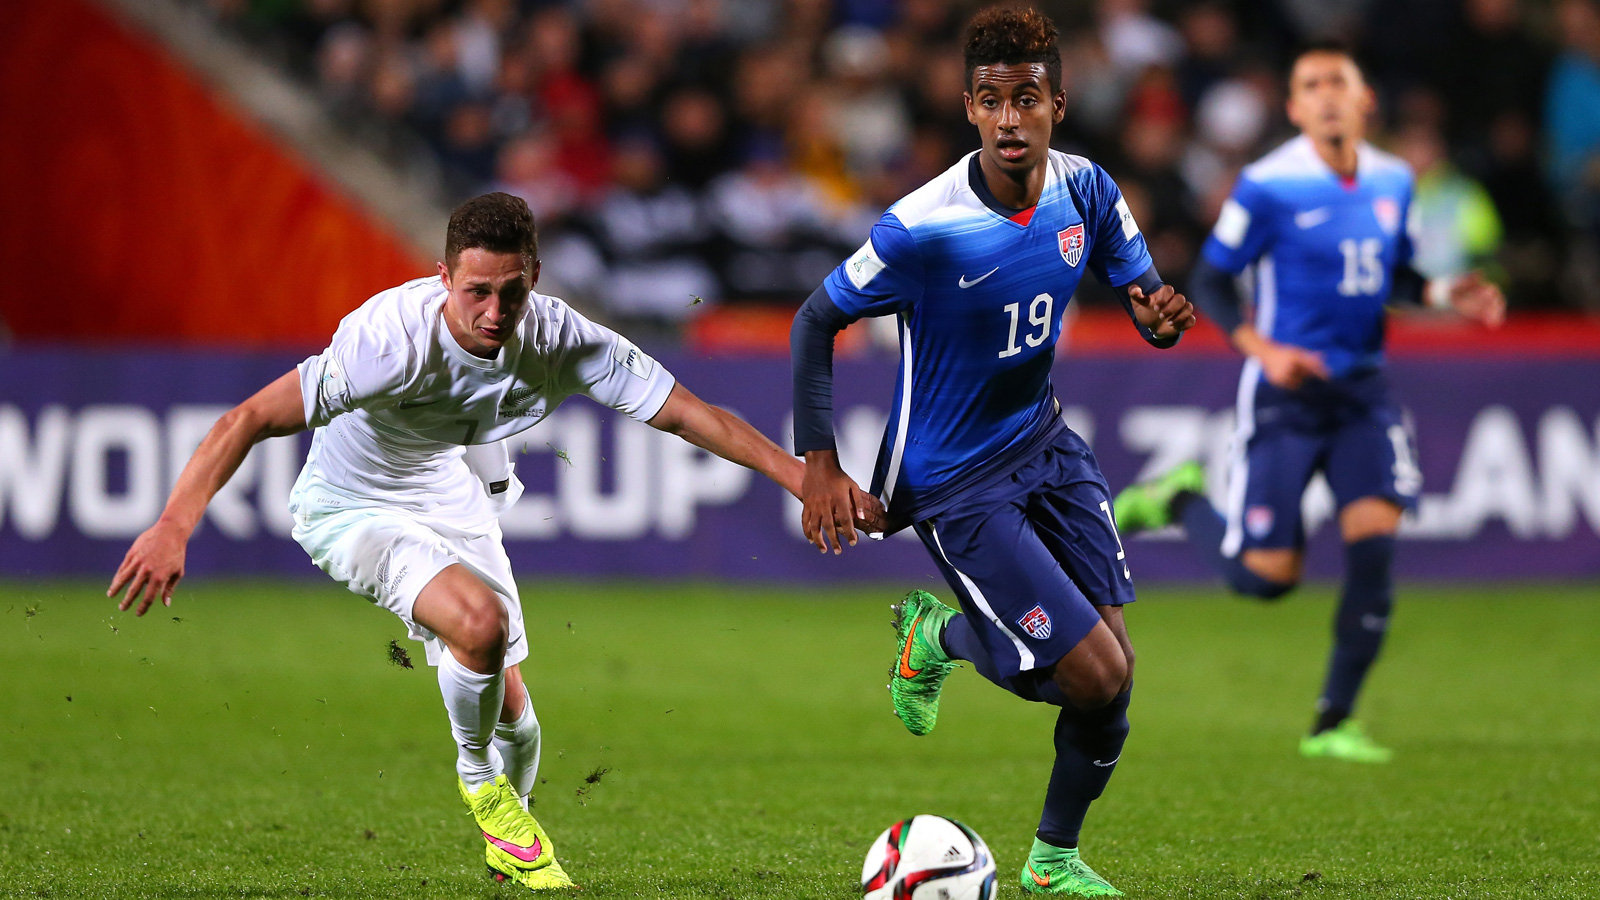 Gedion Zelalem controls the ball against New Zealand in the USA's 4-0 win that cemented a place in the U-20 World Cup knockout stage.